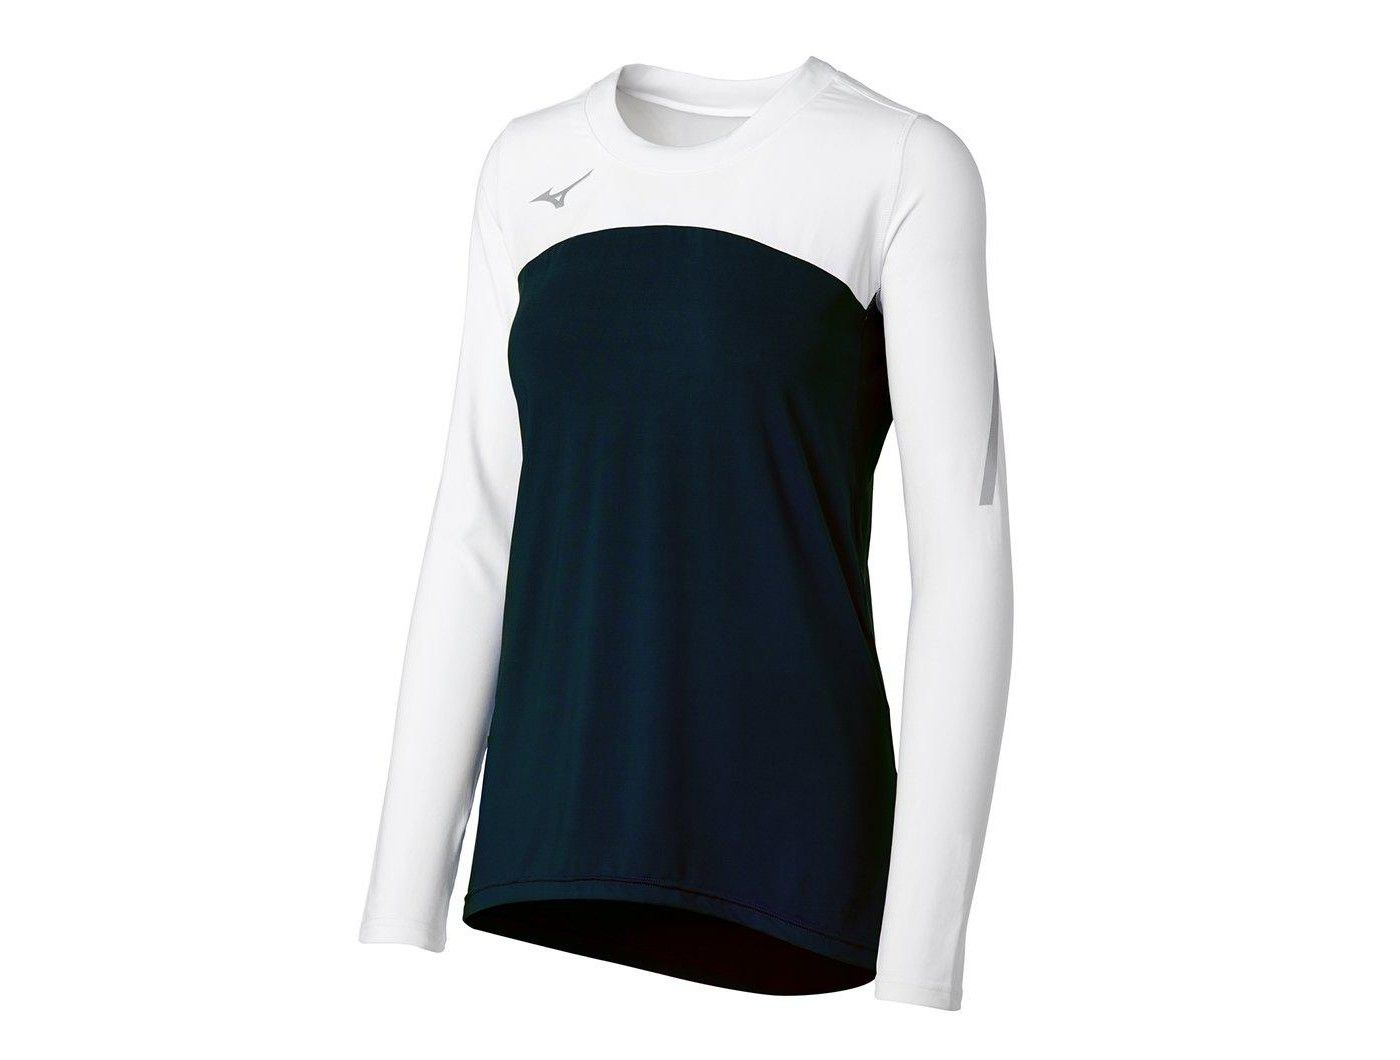 Mizuno Techno Vii Long Sleeve Jersey Womens Size Large In Color Royal 5252 Affiliate Long Long Sleeve Jersey Summer Fashion Outfits Casual Style Outfits